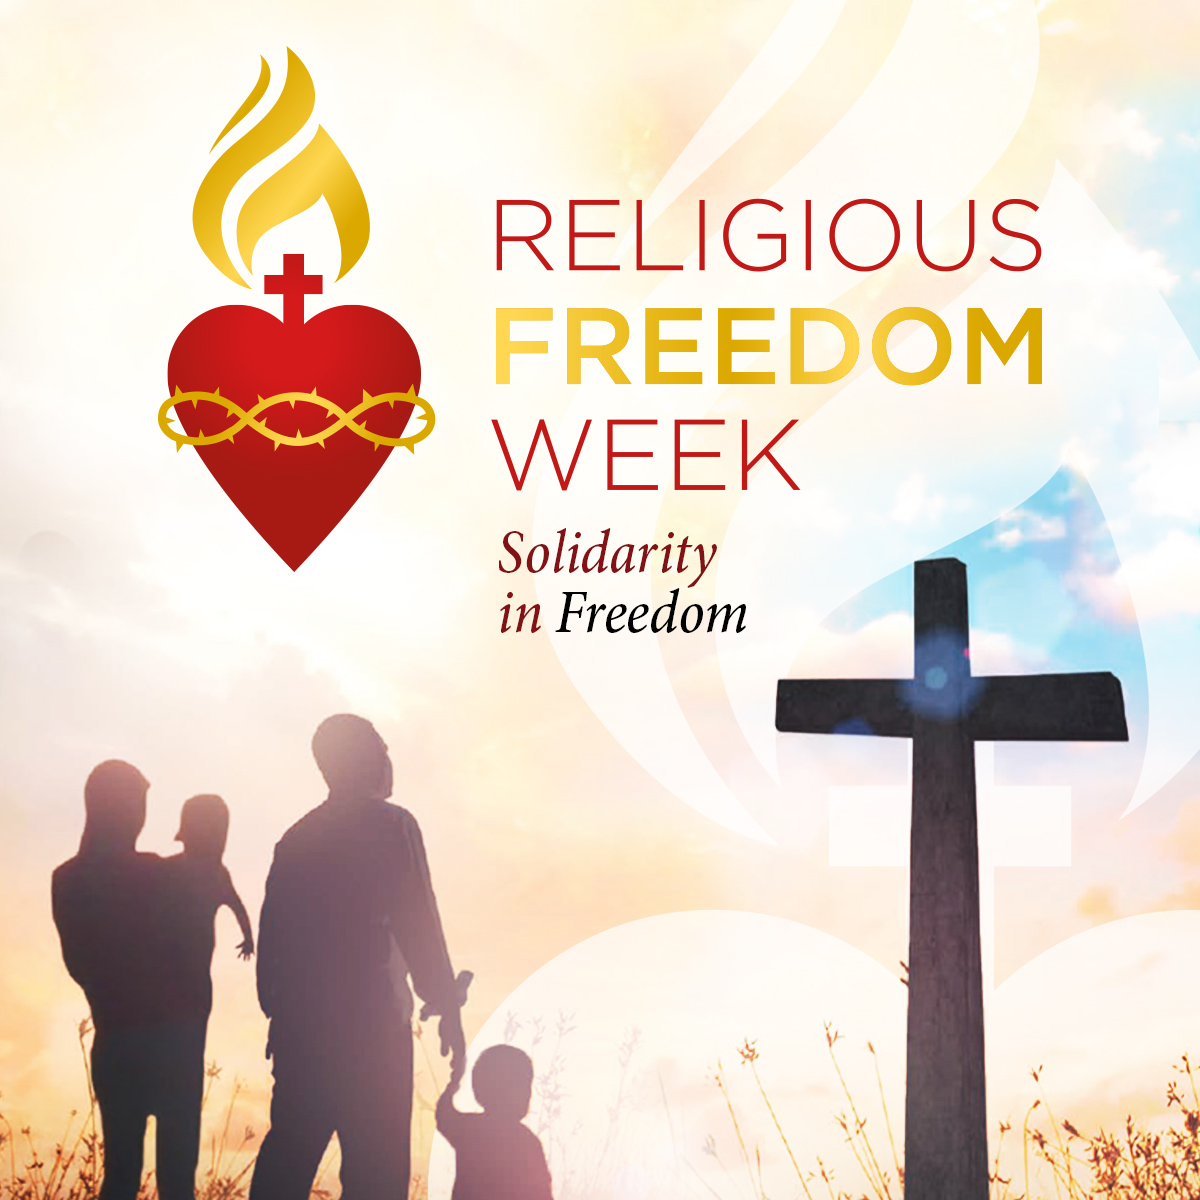 USCCB Resources - Religious Freedom Top Image